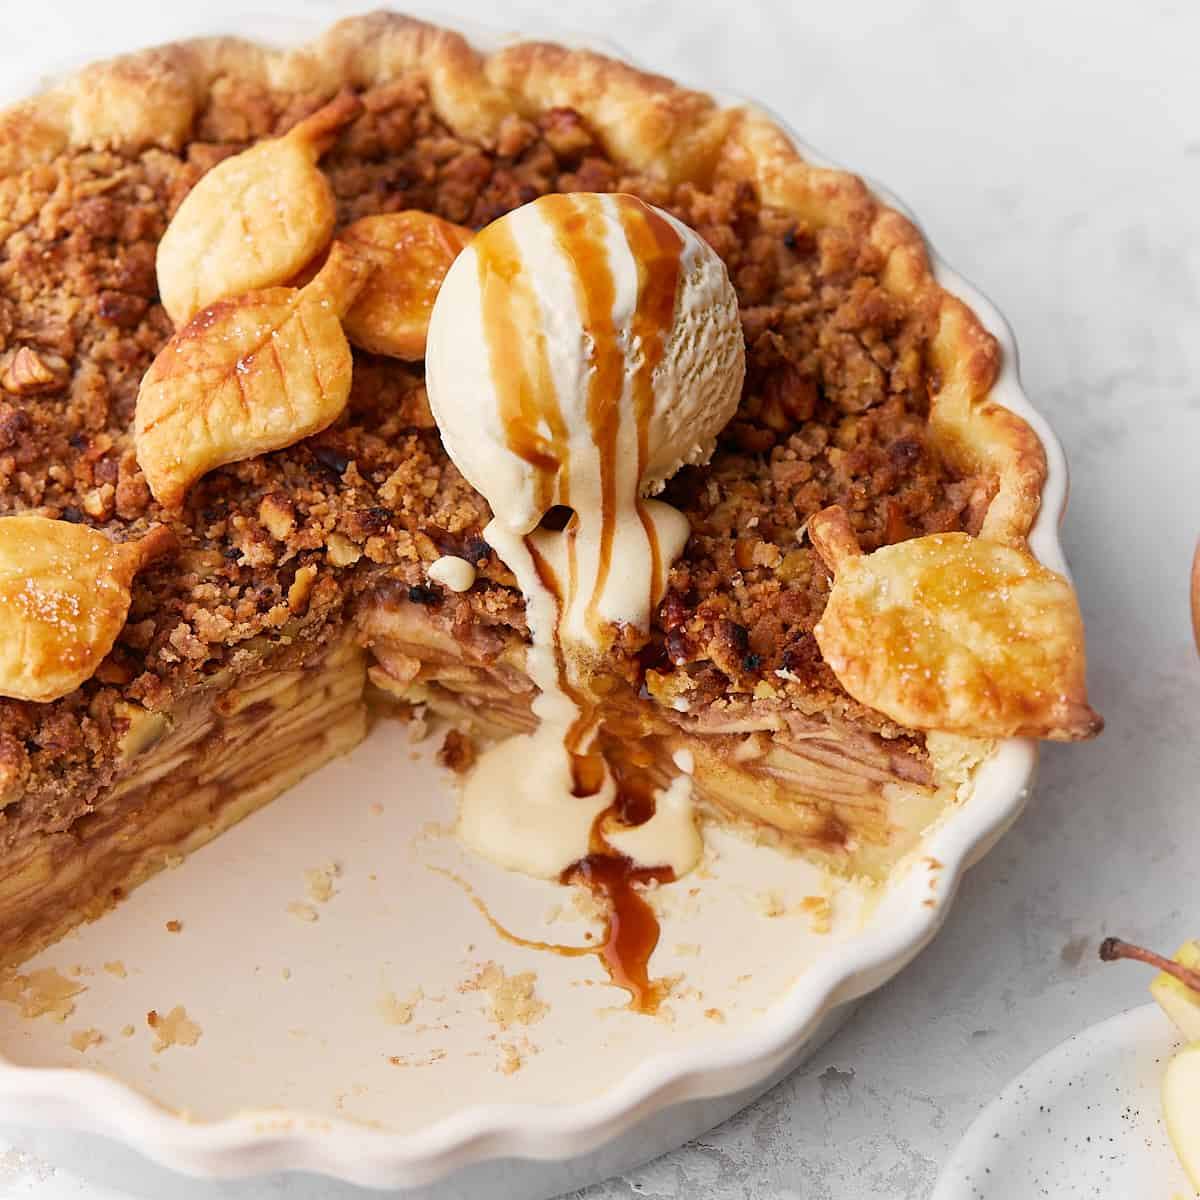 Decorative picture of baked apple crumble pie with ice cream on top on bright background